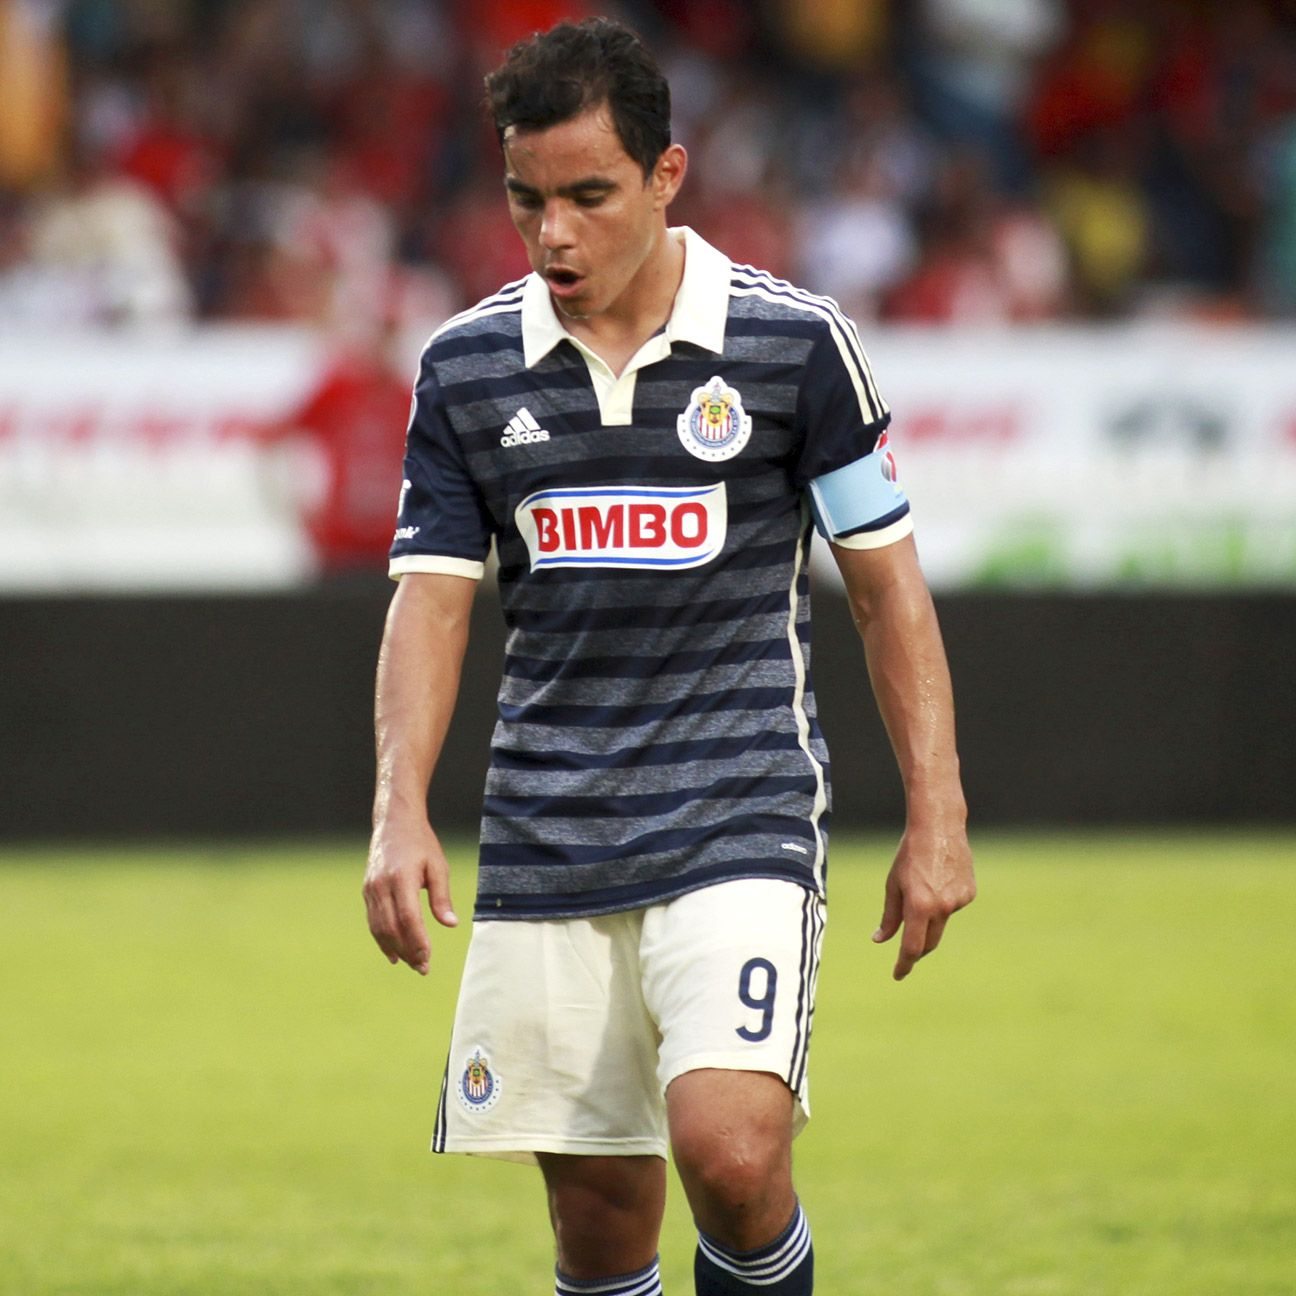 Omar Bravo and Chivas are desperate to solve their scoring woes.